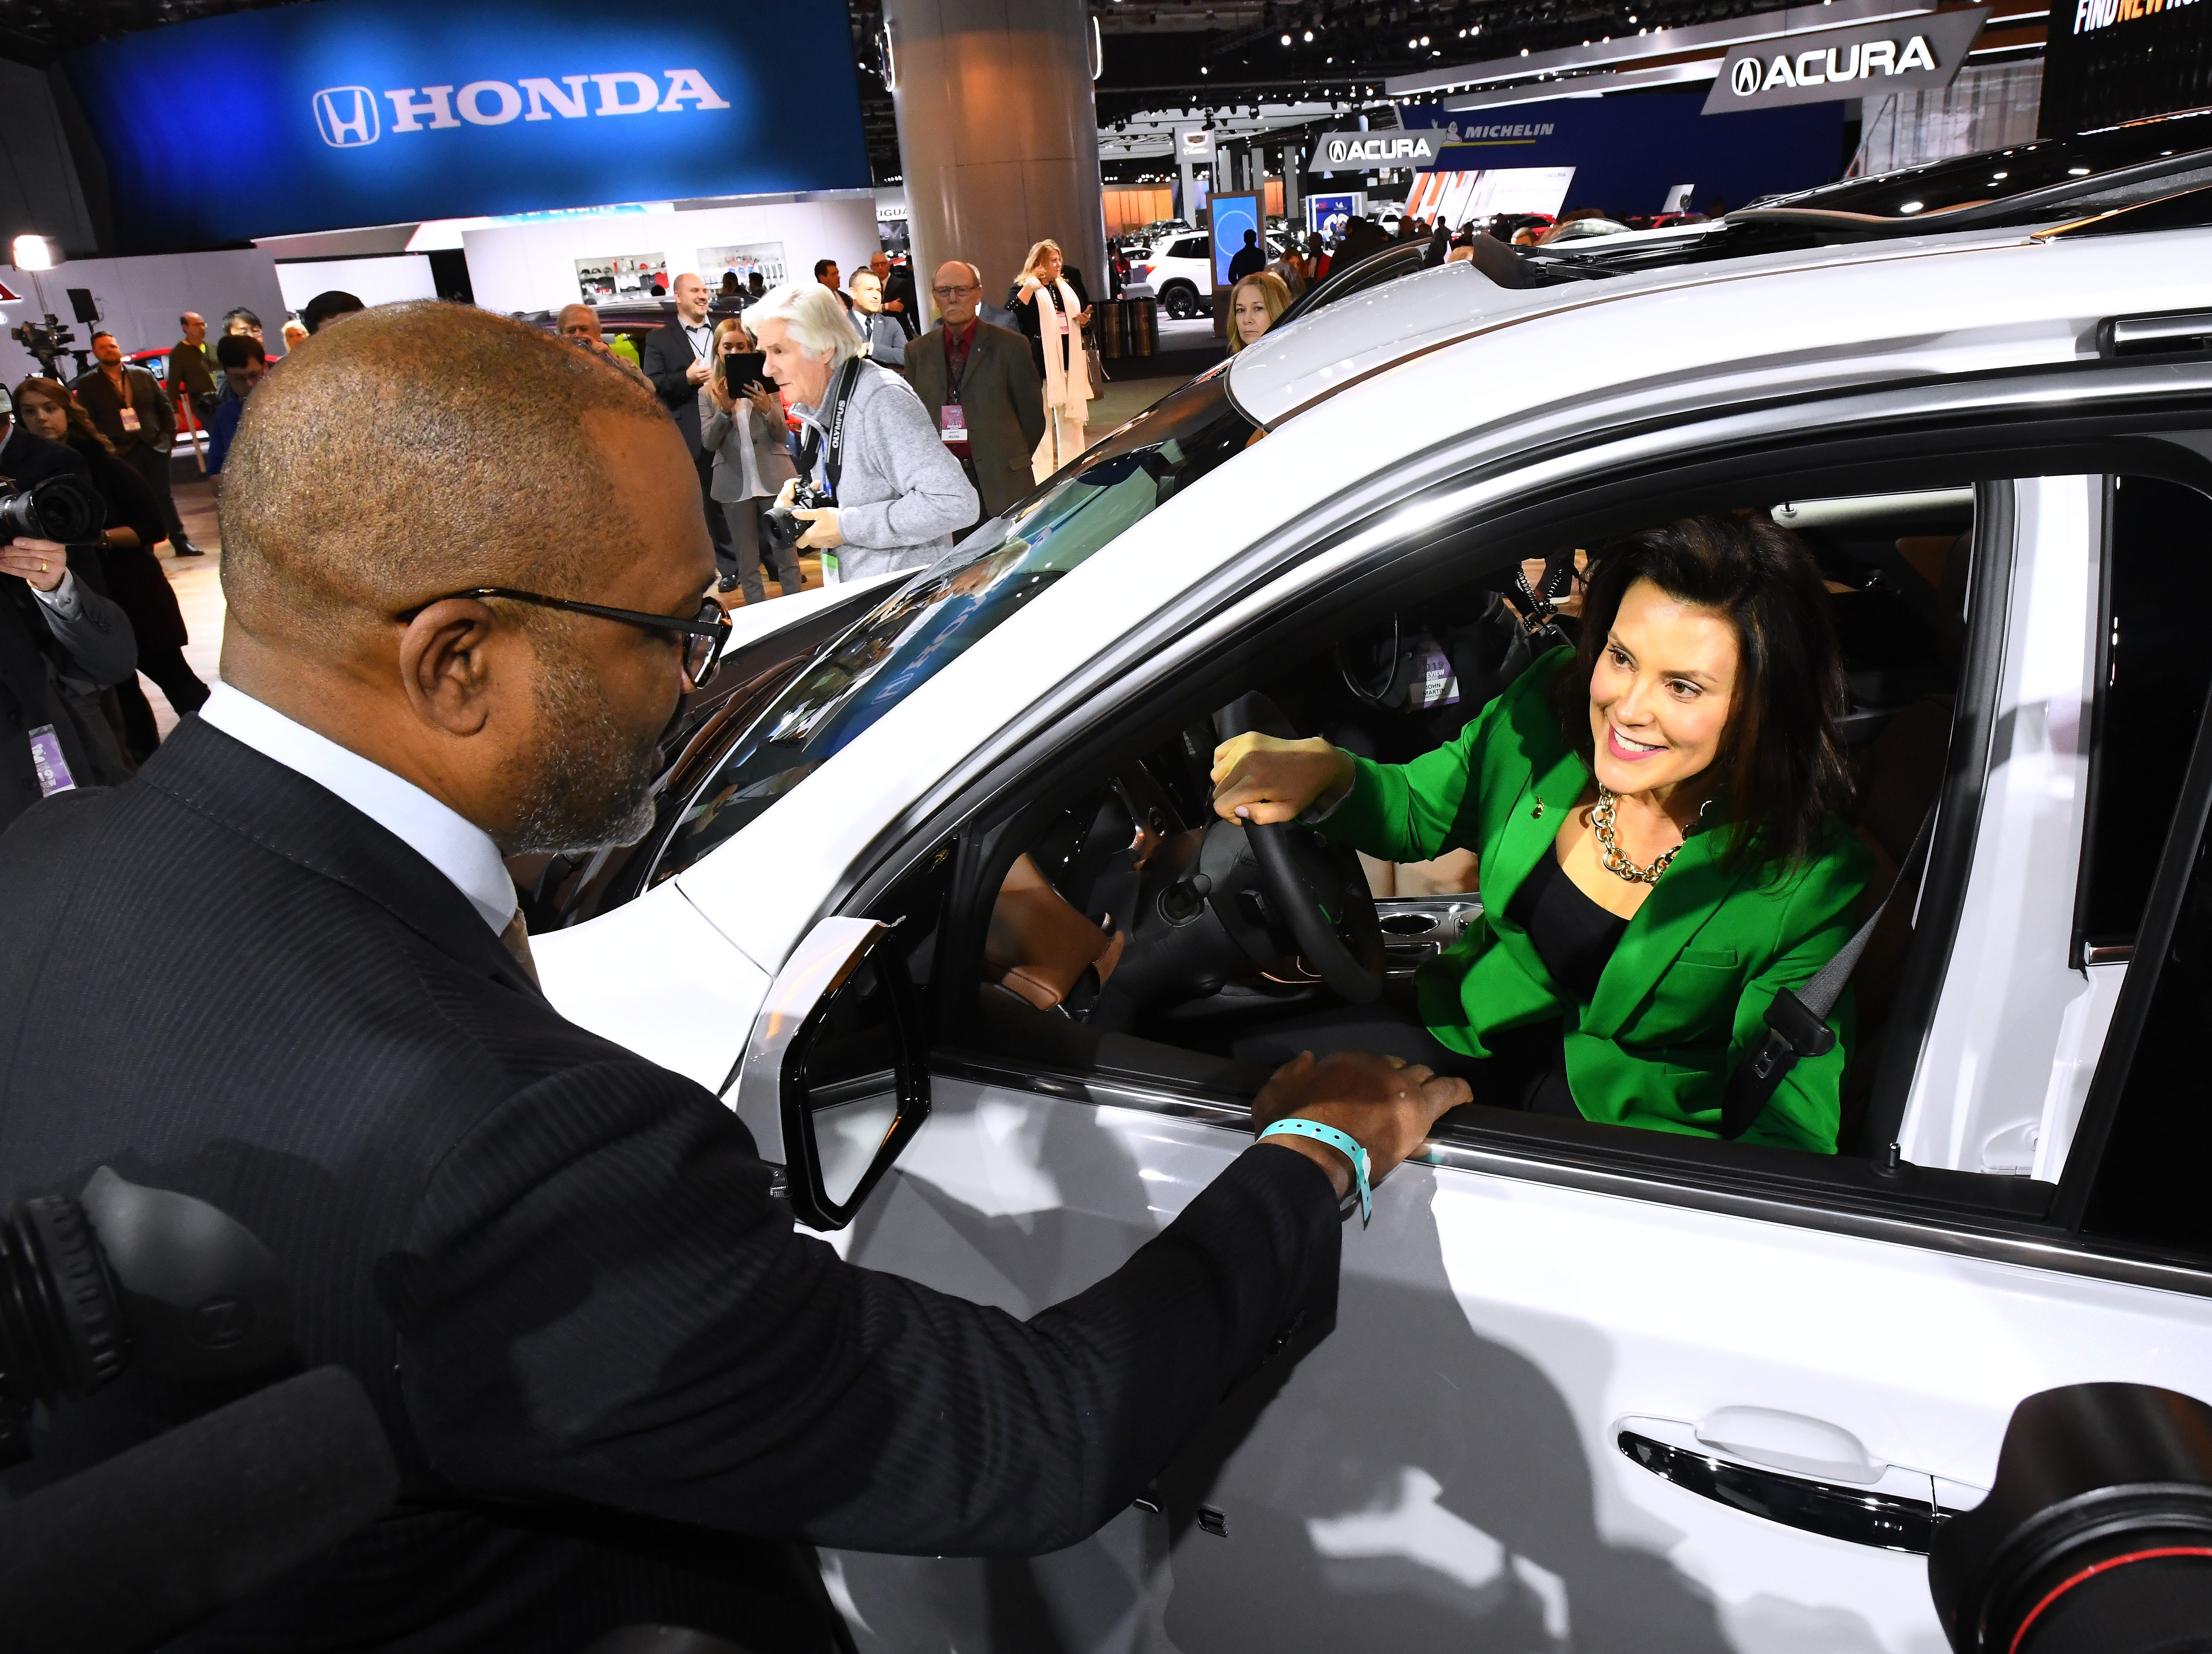 North America Manufacturing Vice President Gerald Johnson gives Michigan Governor Gretchen Whitmer  a look at the Chevrolet Travers in the General Motors display during a tour of the North American International Auto Show.